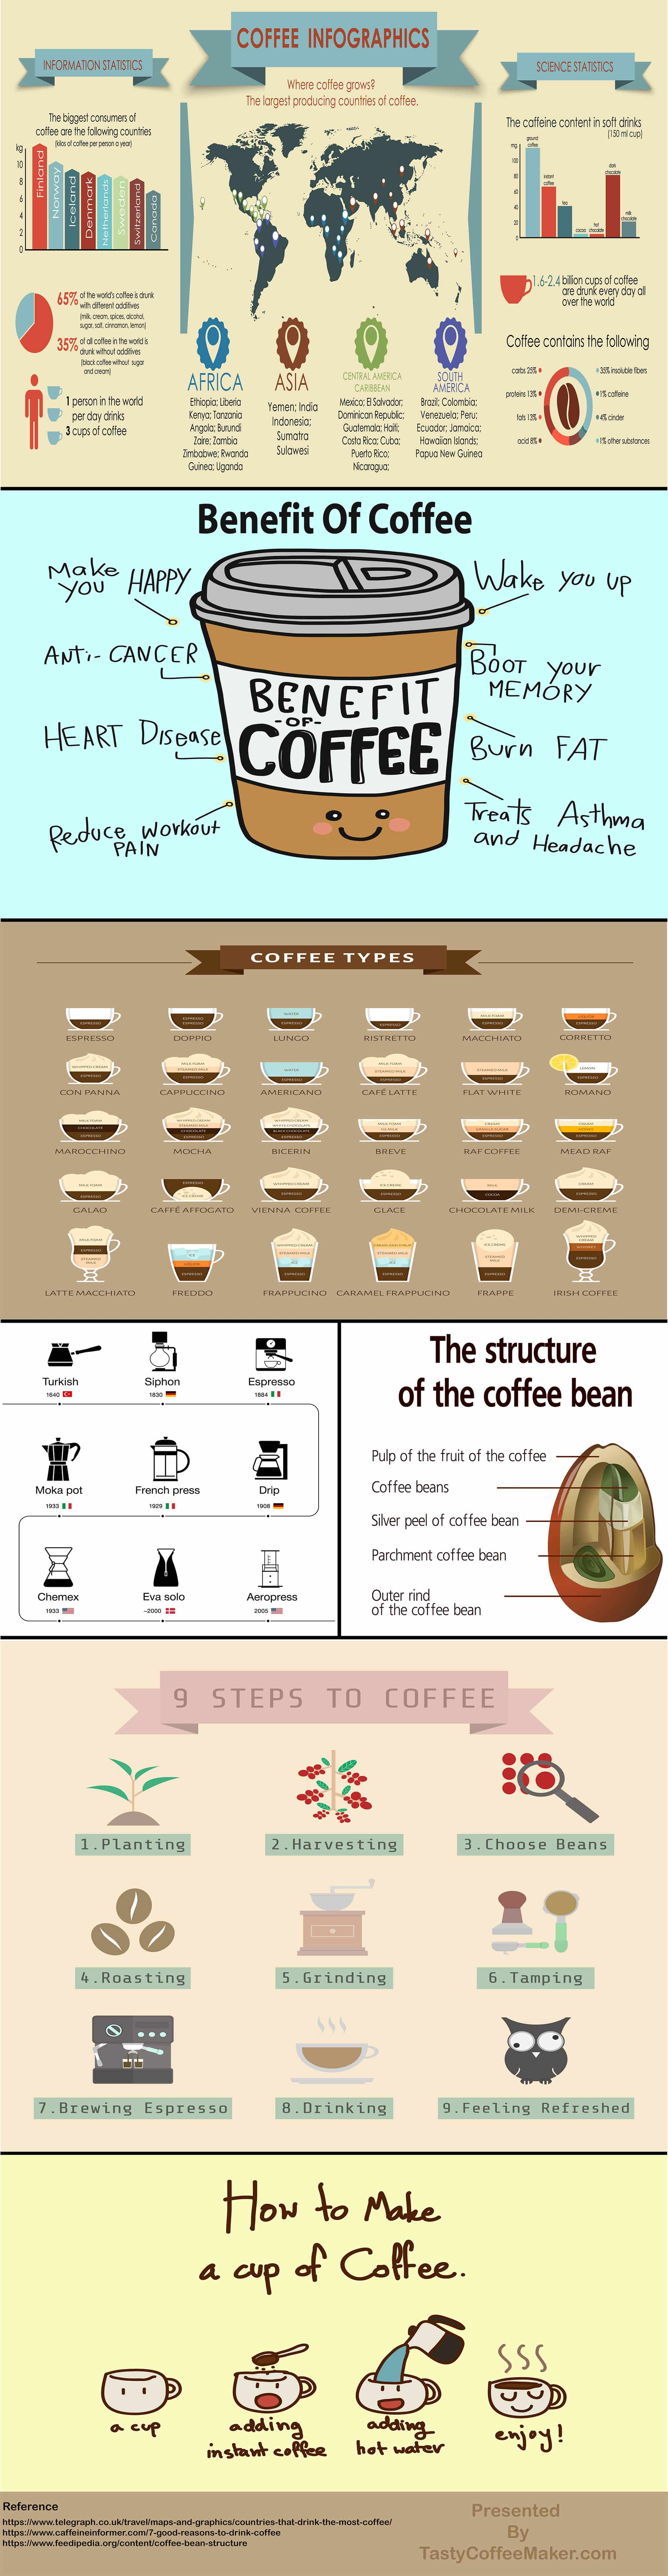 Coffee Infographic Presented By TastyCoffeeMaker